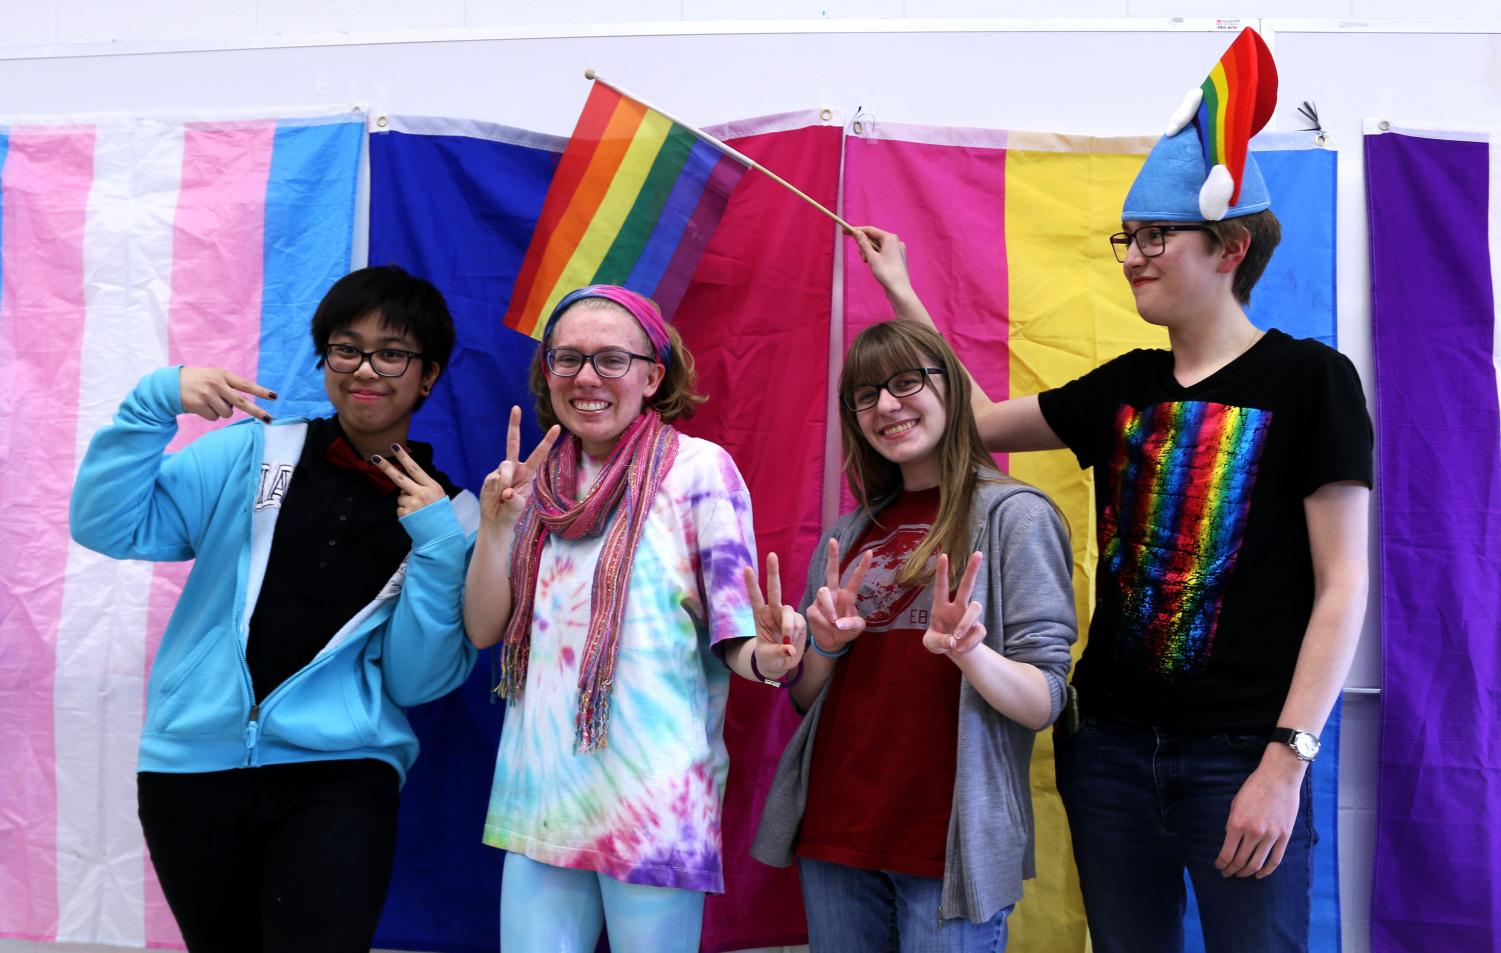 Senior Felisa Umadhay (far left), an active member of GSA, relayed that GSA was created as a safe space for members of the LGBTQ+ community.